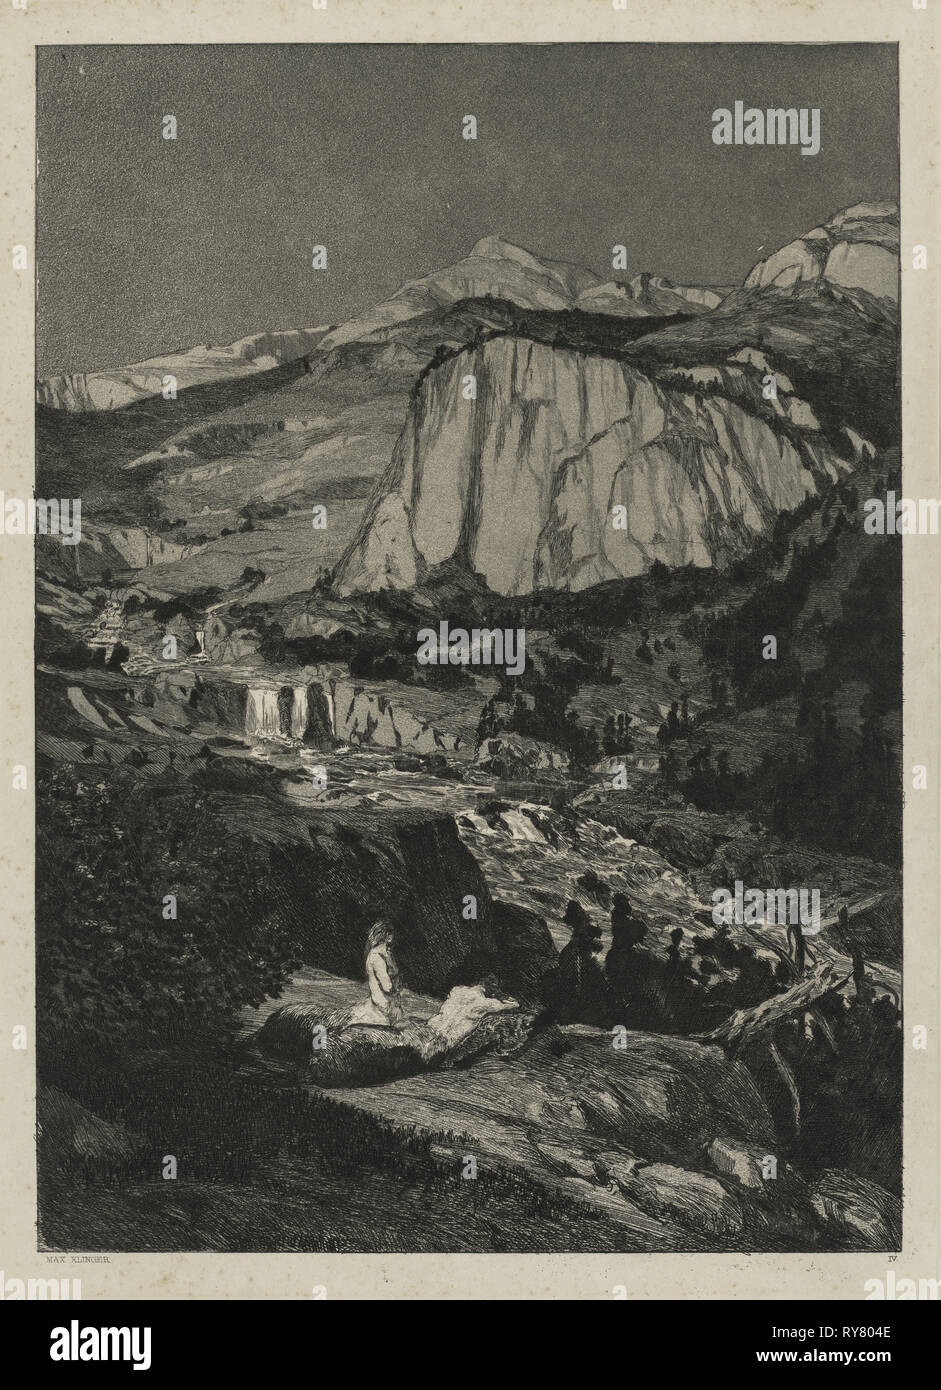 Intermezzo: Moonlit Night (Opus IV, 5), 1881. Max Klinger (German, 1857-1920). Etching and aquatint on chine collé; platemark: 36.2 x 26 cm (14 1/4 x 10 1/4 in.); secondary support: 43.5 x 35 cm (17 1/8 x 13 3/4 in Stock Photo